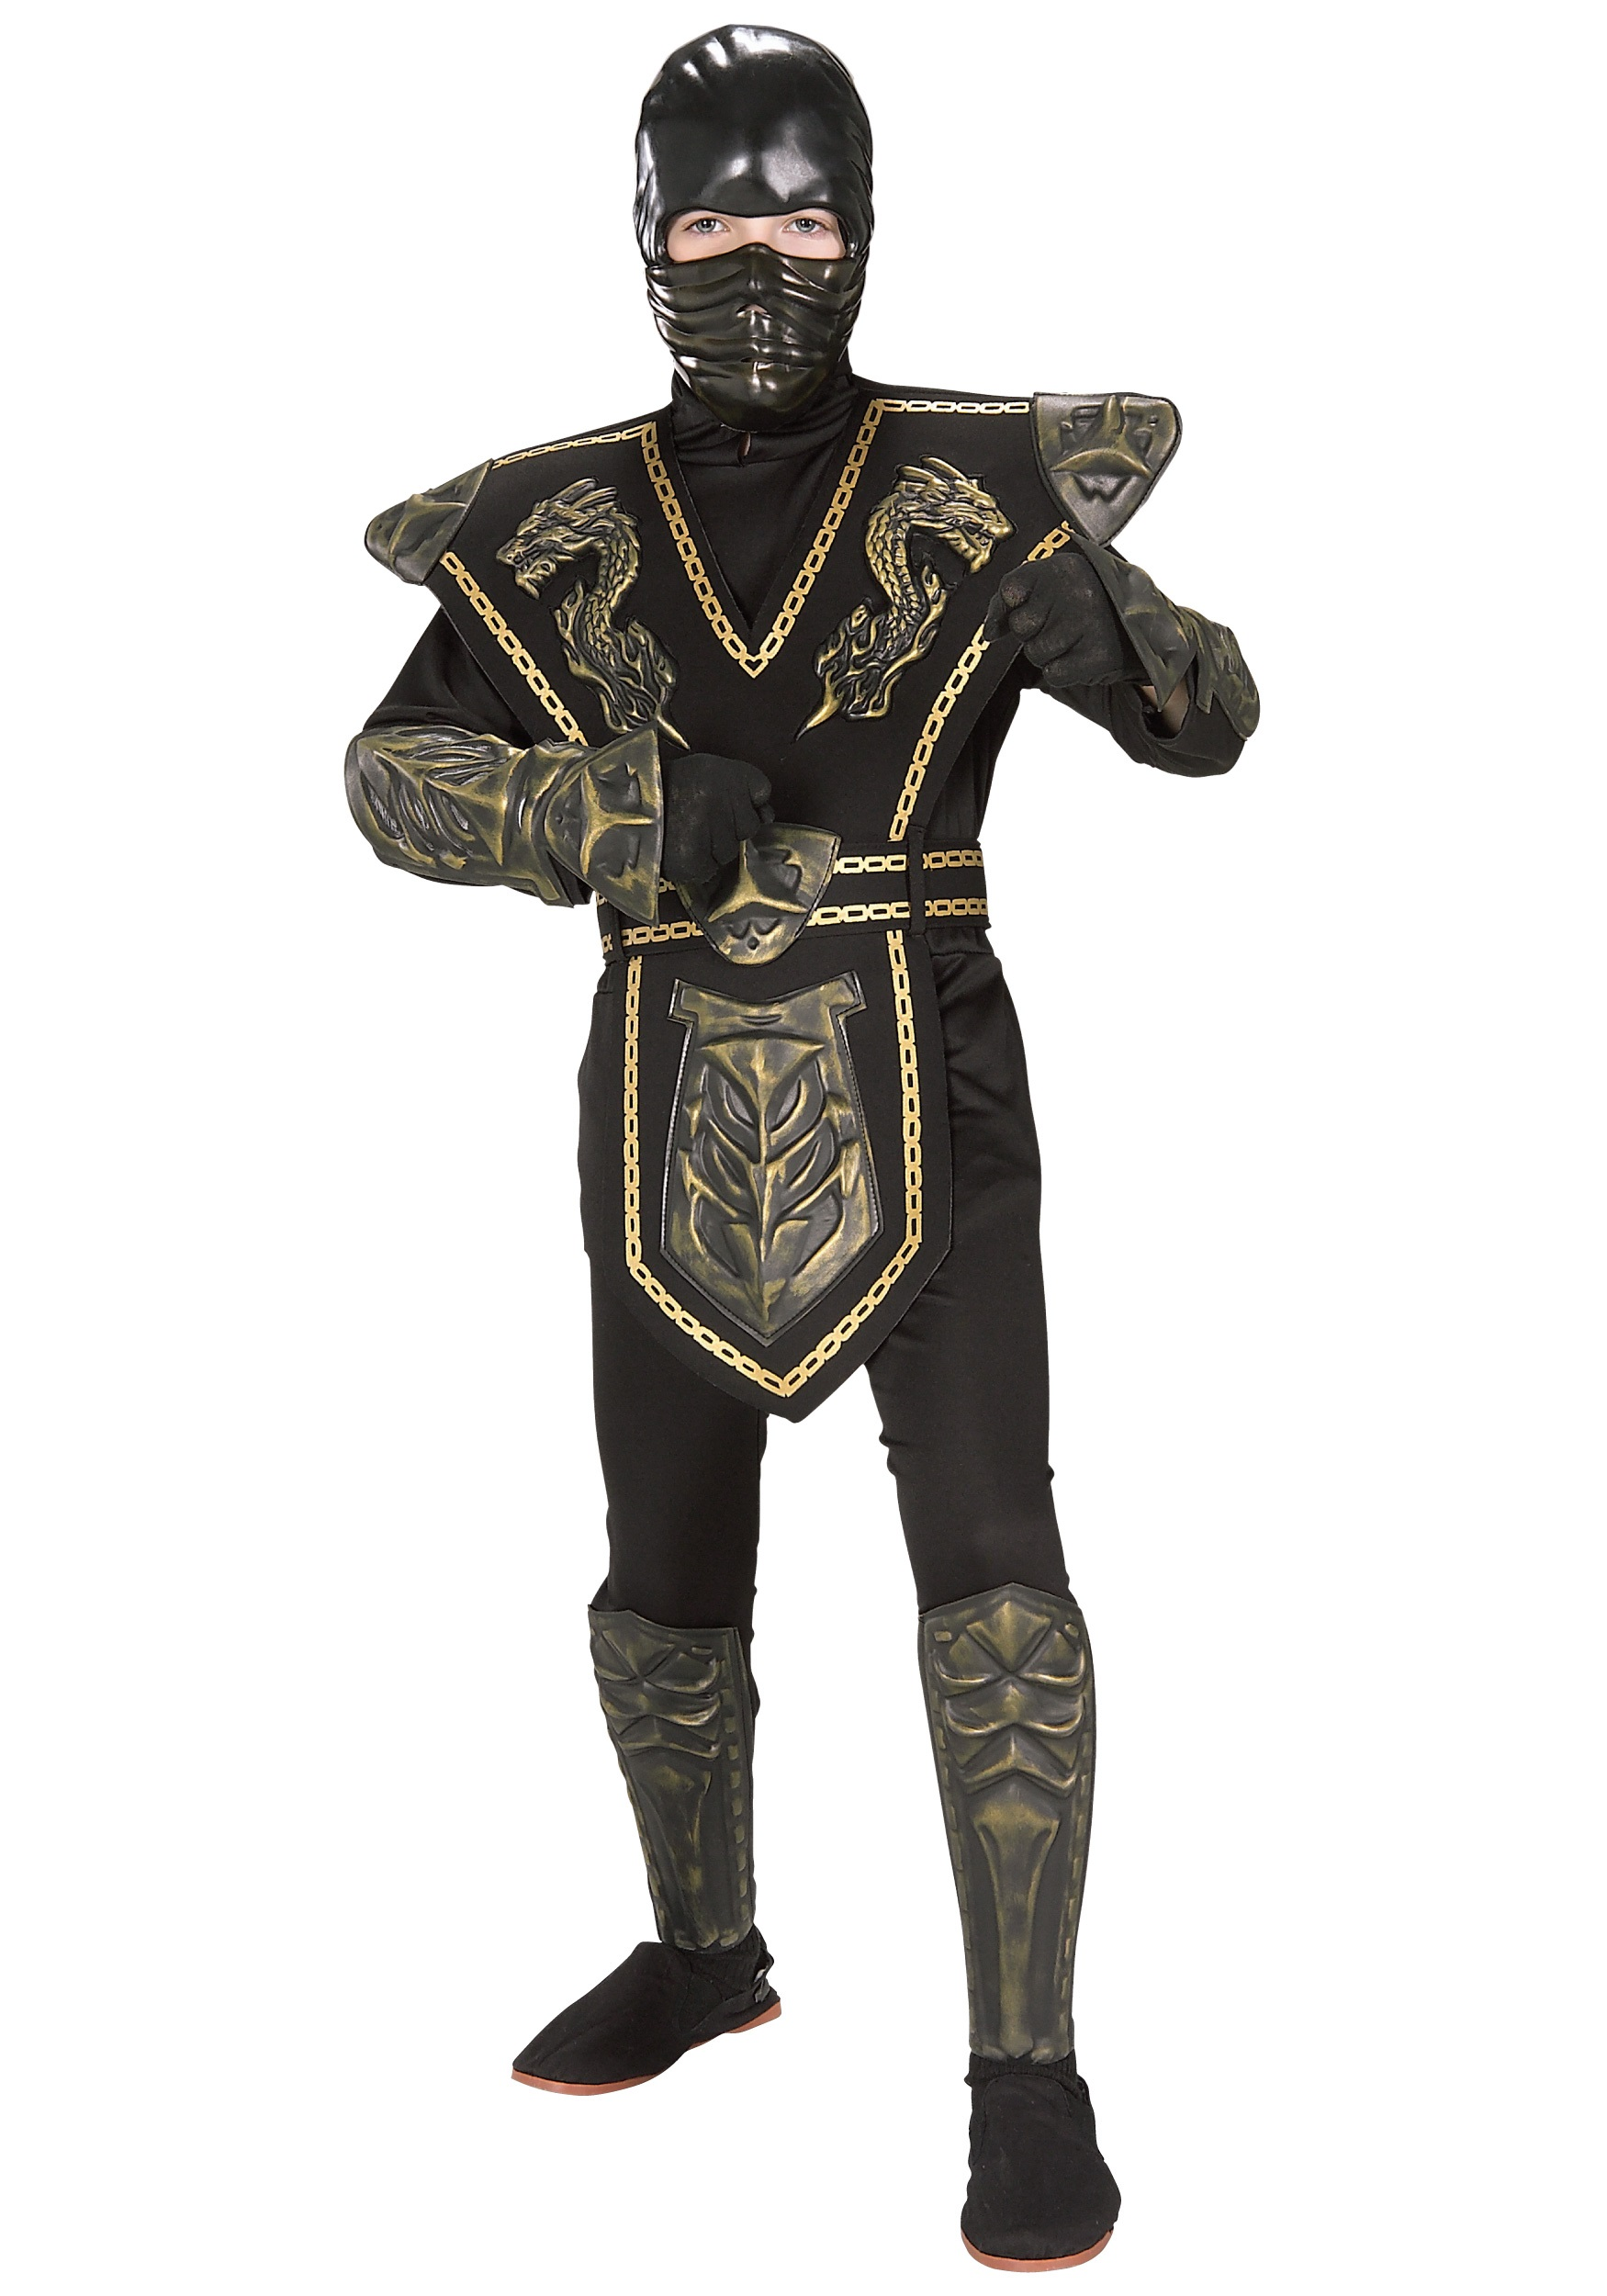 costume with boy iii halloween armor series gold avenger products original ninja child ninjas